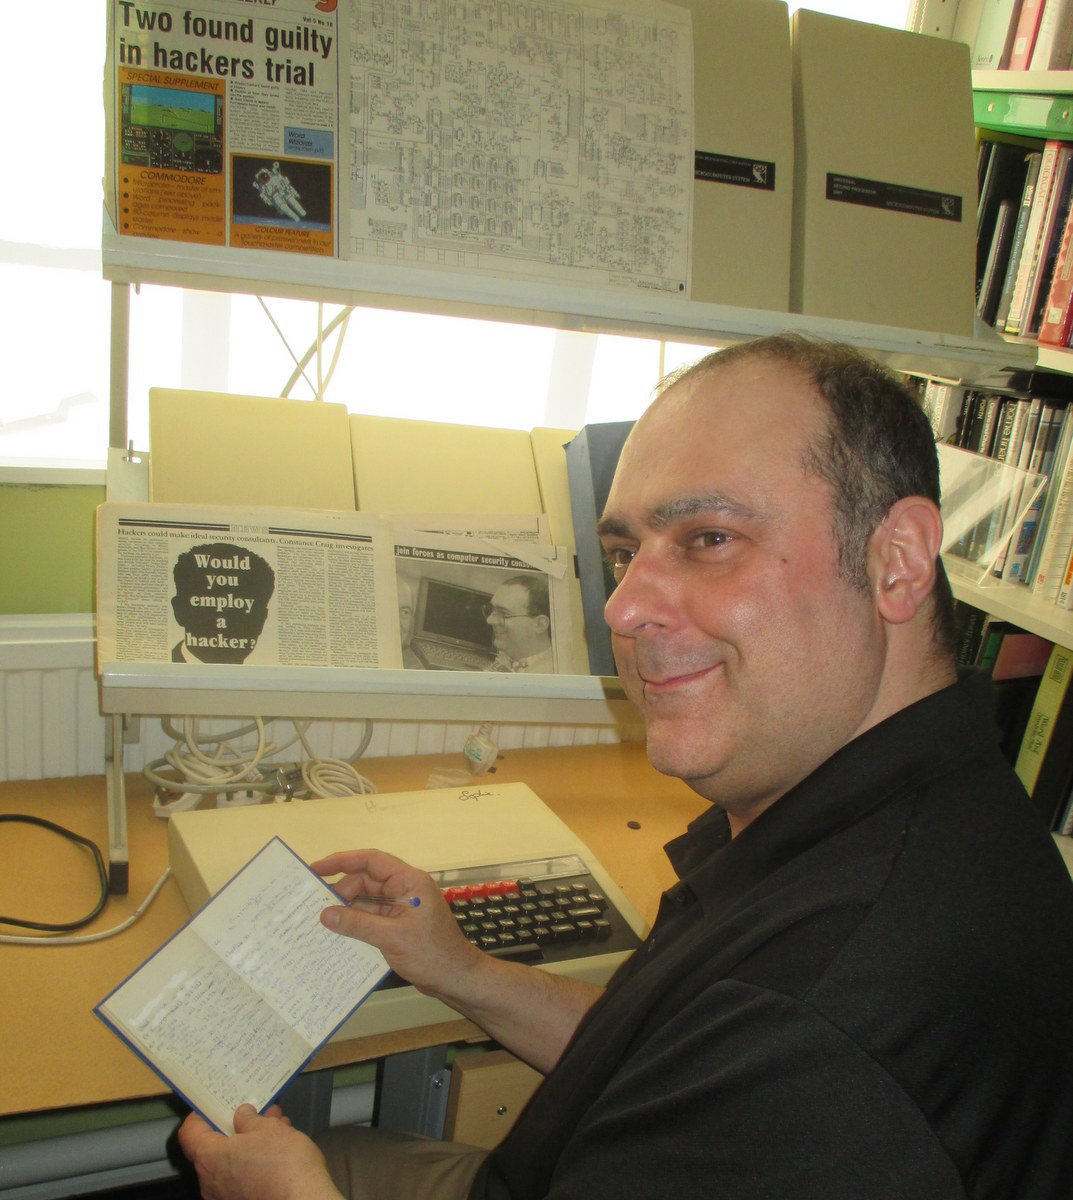 Robert Schifreen relives a 1980's computing experience ion the TNMOC classroom.